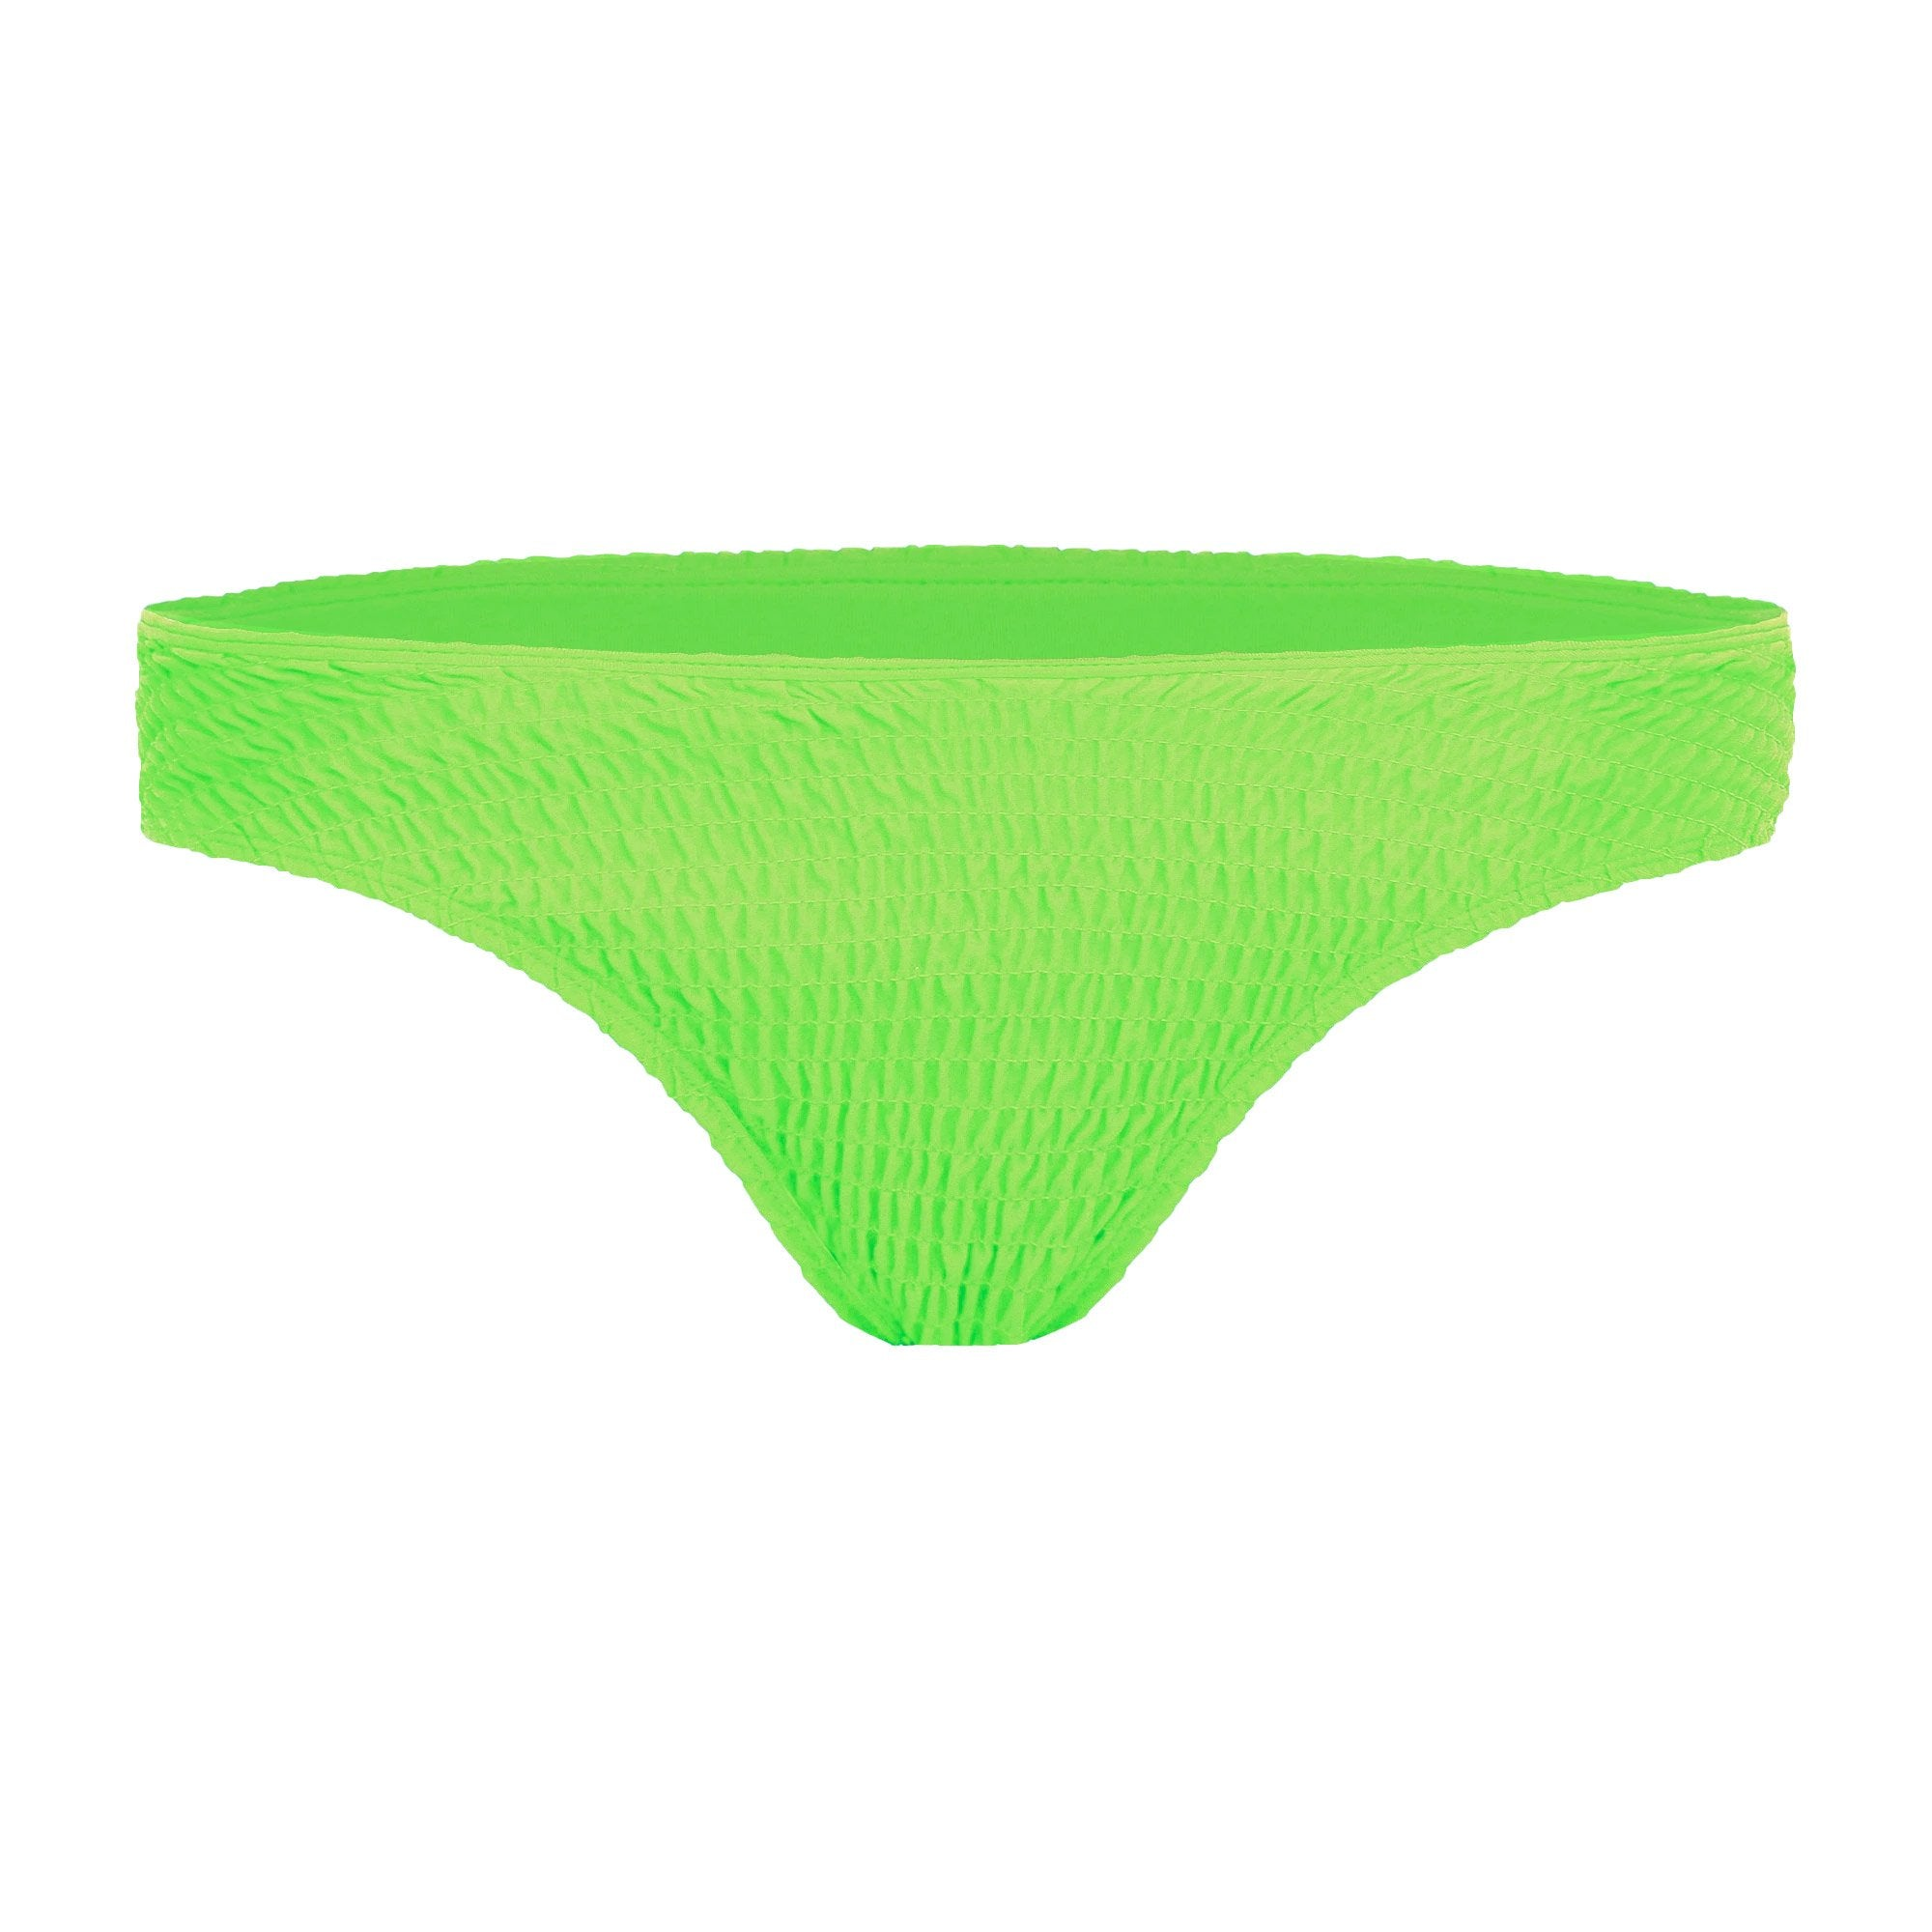 havana-ribbed-bikini-lime-neon-bottom-ghost.jpg